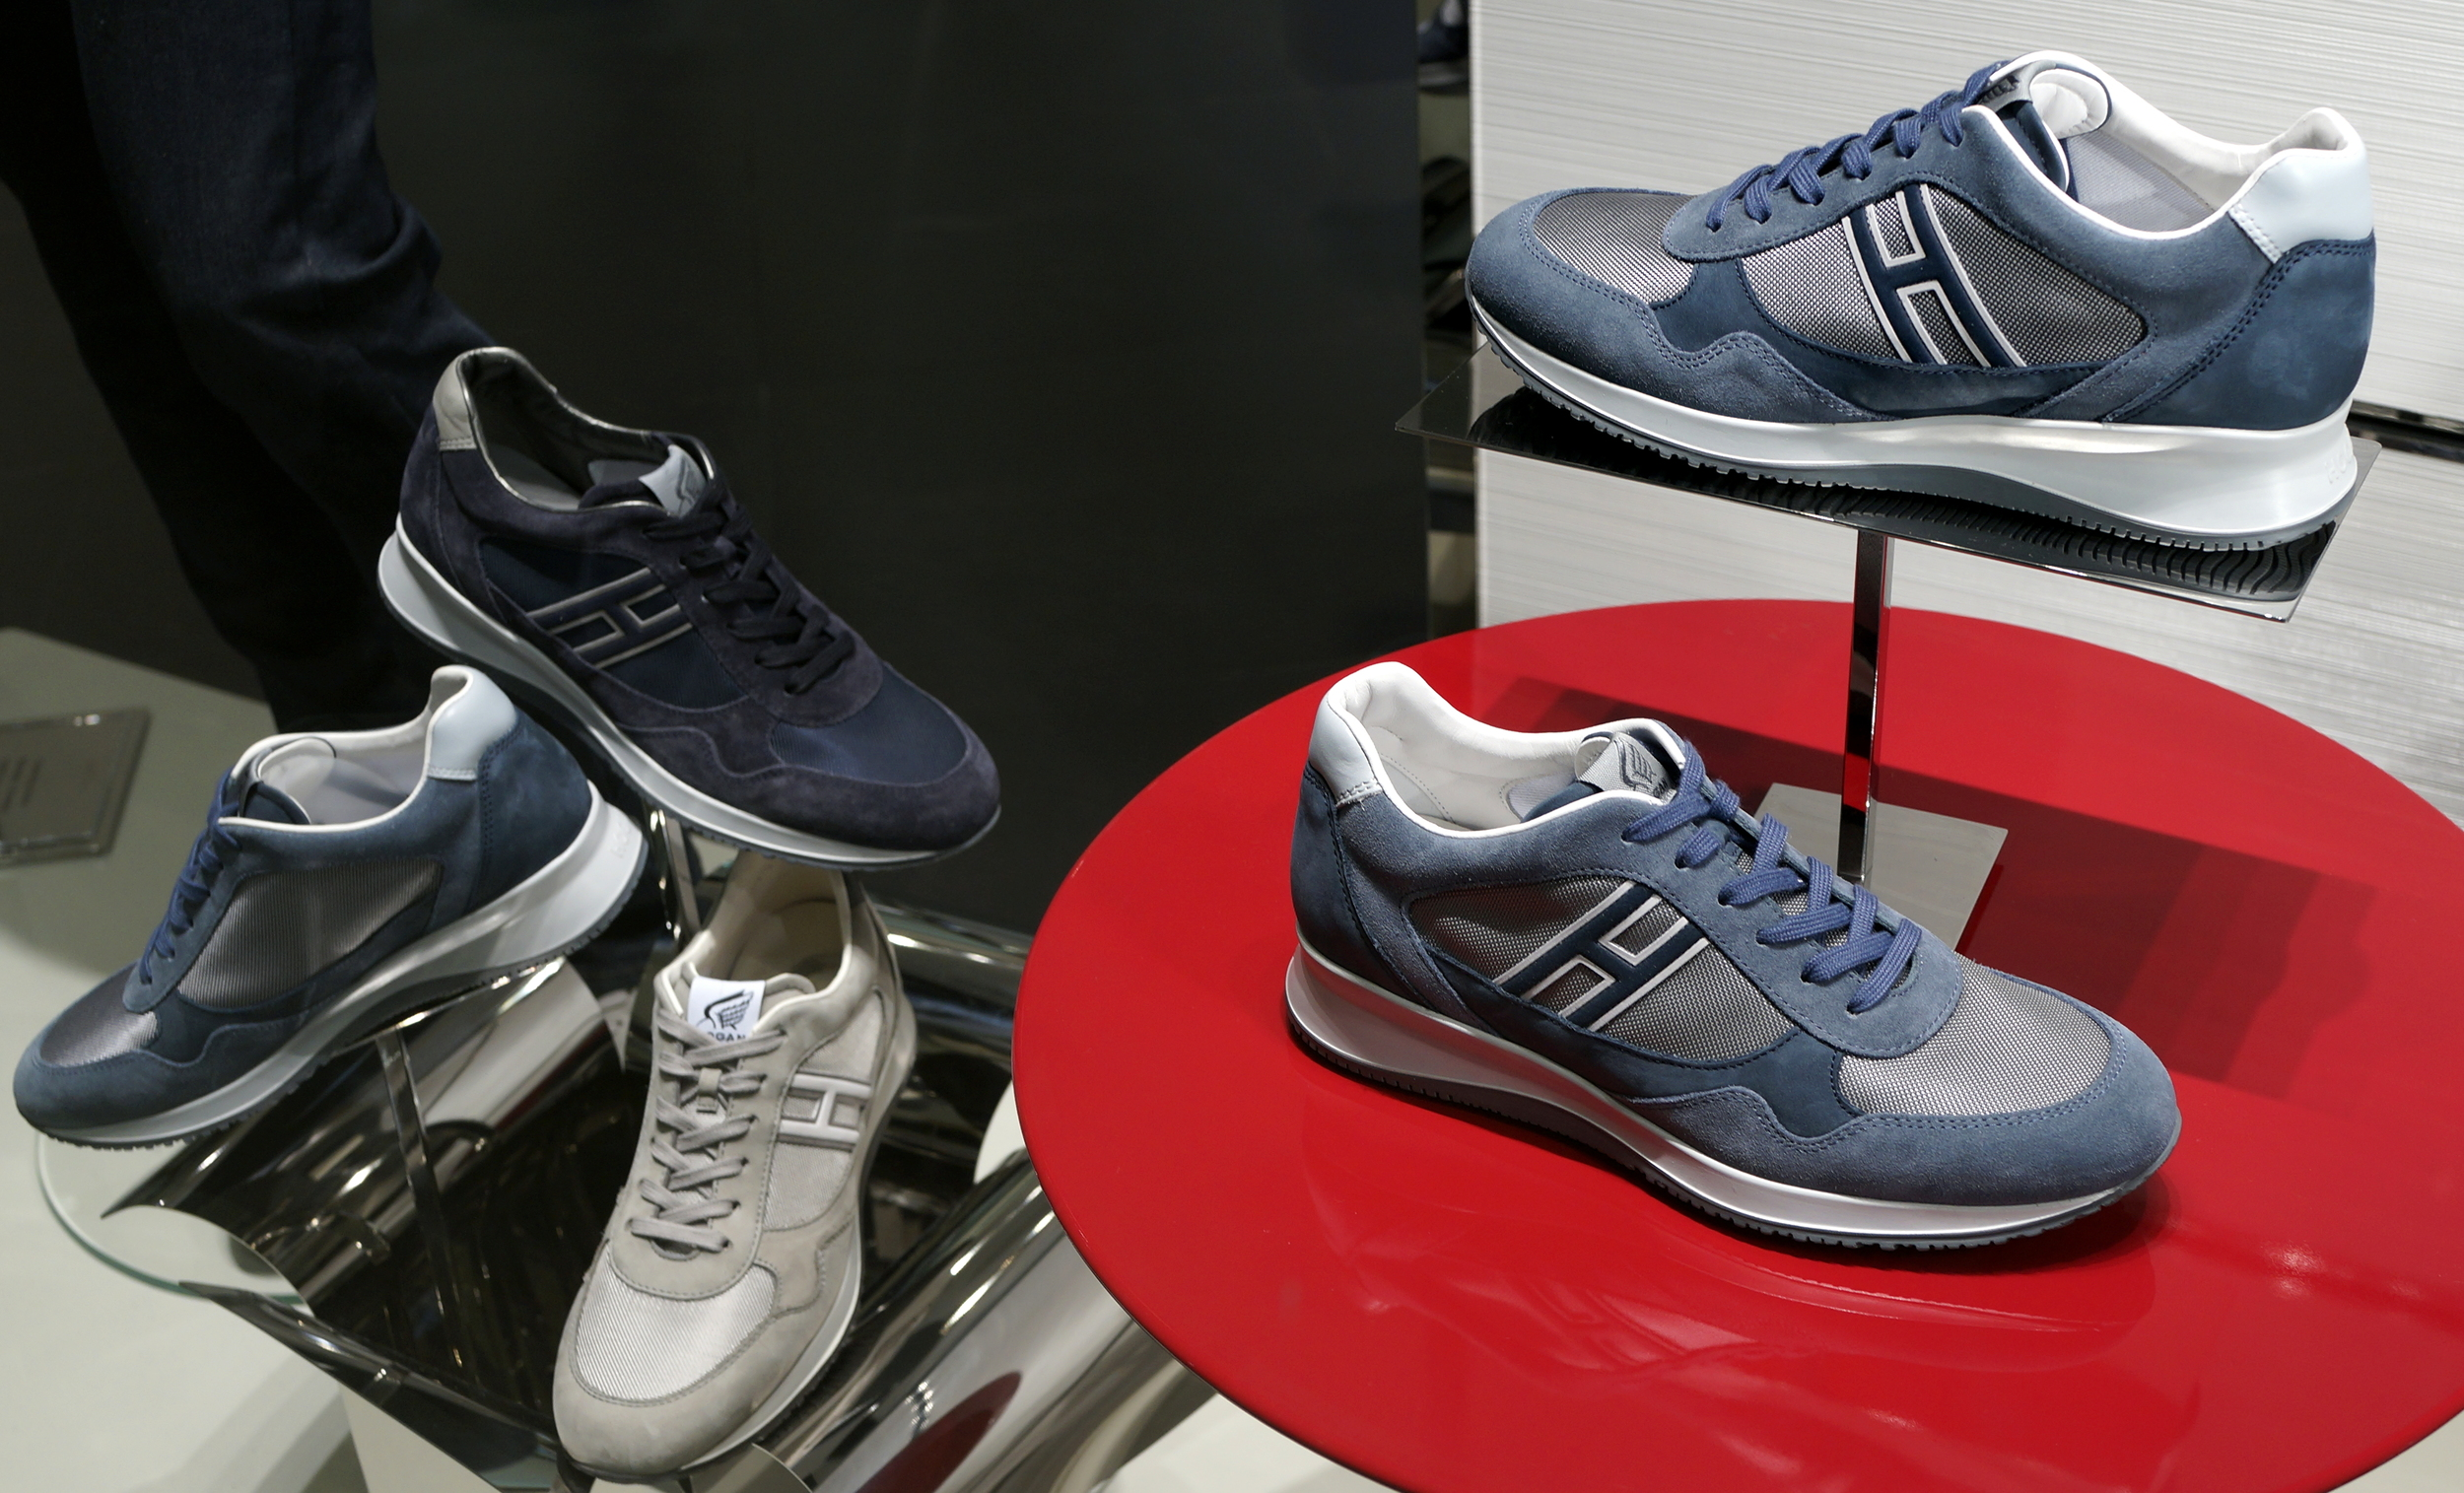 I wear Geox shoes, they are the most comfortable walking shoes ever, however, I may change to Hogan, they look almost the same and they will help me re-discover my youth! they do look cool.